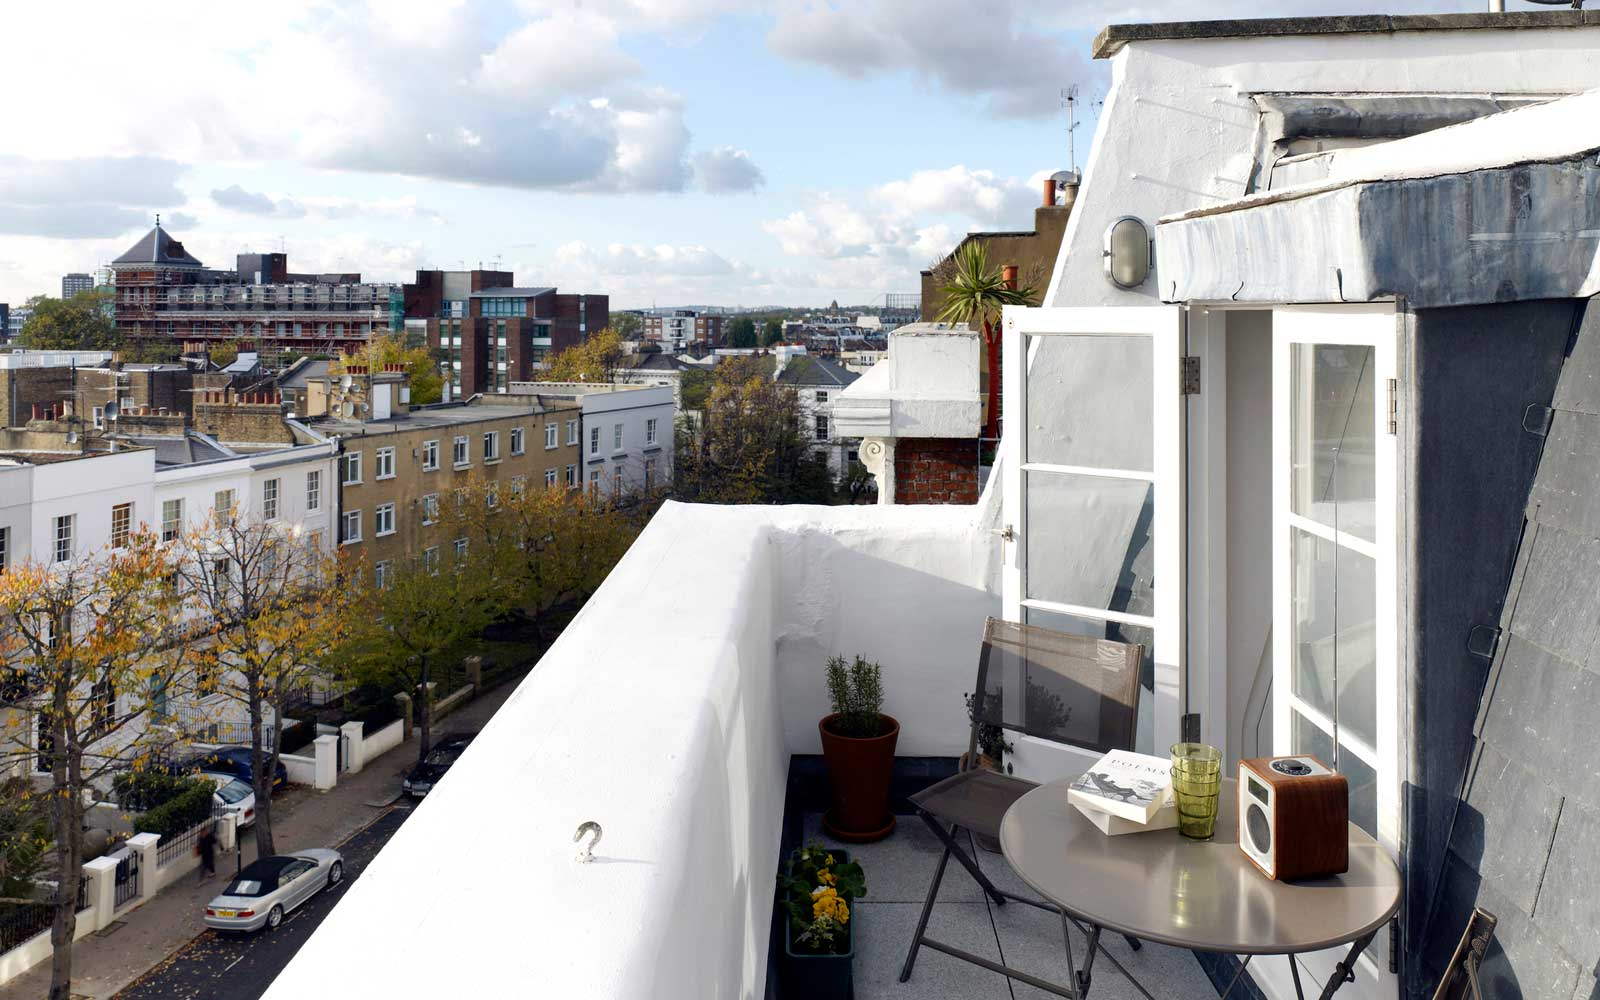 Private Apartment, London, United Kingdom, 2012.